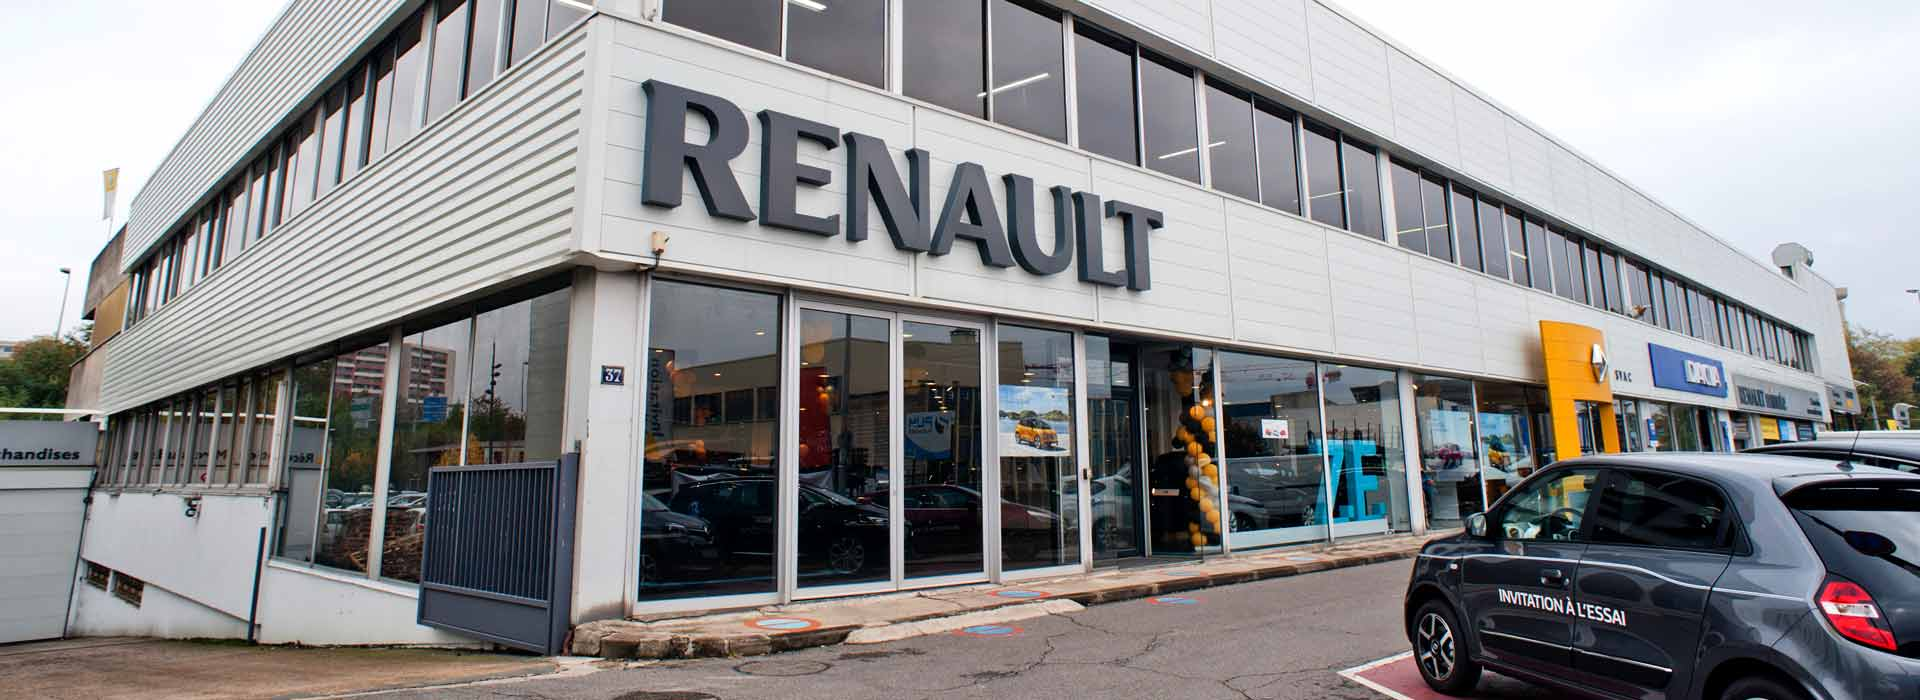 renault creteil concessionnaire garage val de marne 94. Black Bedroom Furniture Sets. Home Design Ideas